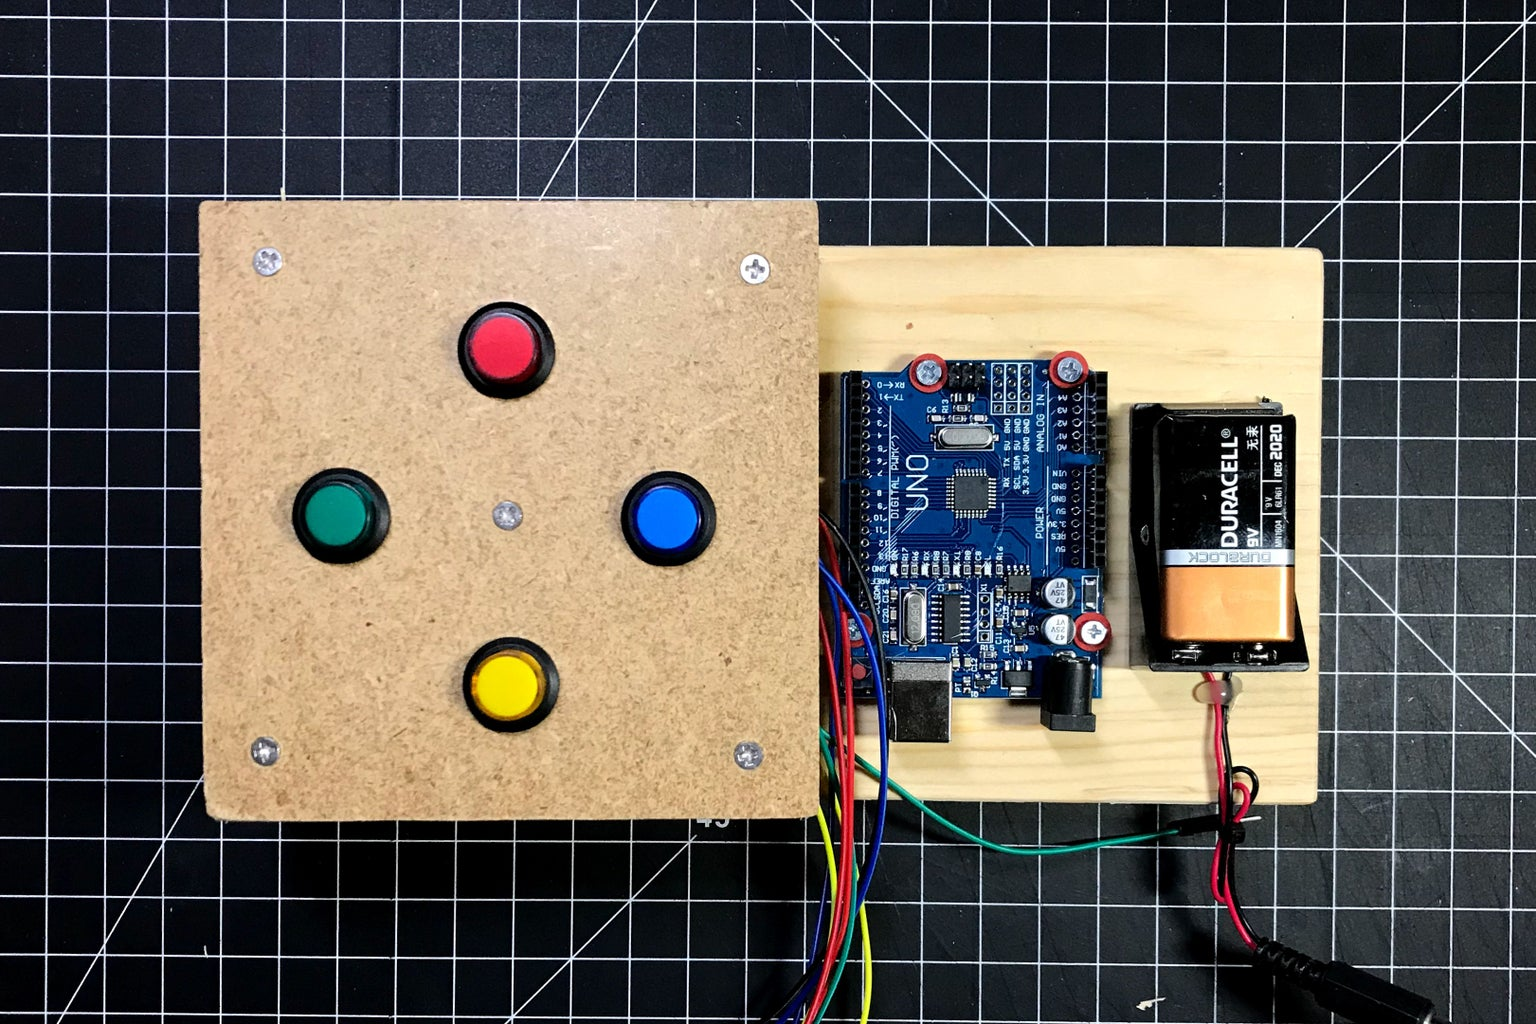 Attach Arduino and Battery Holder to the Base Board